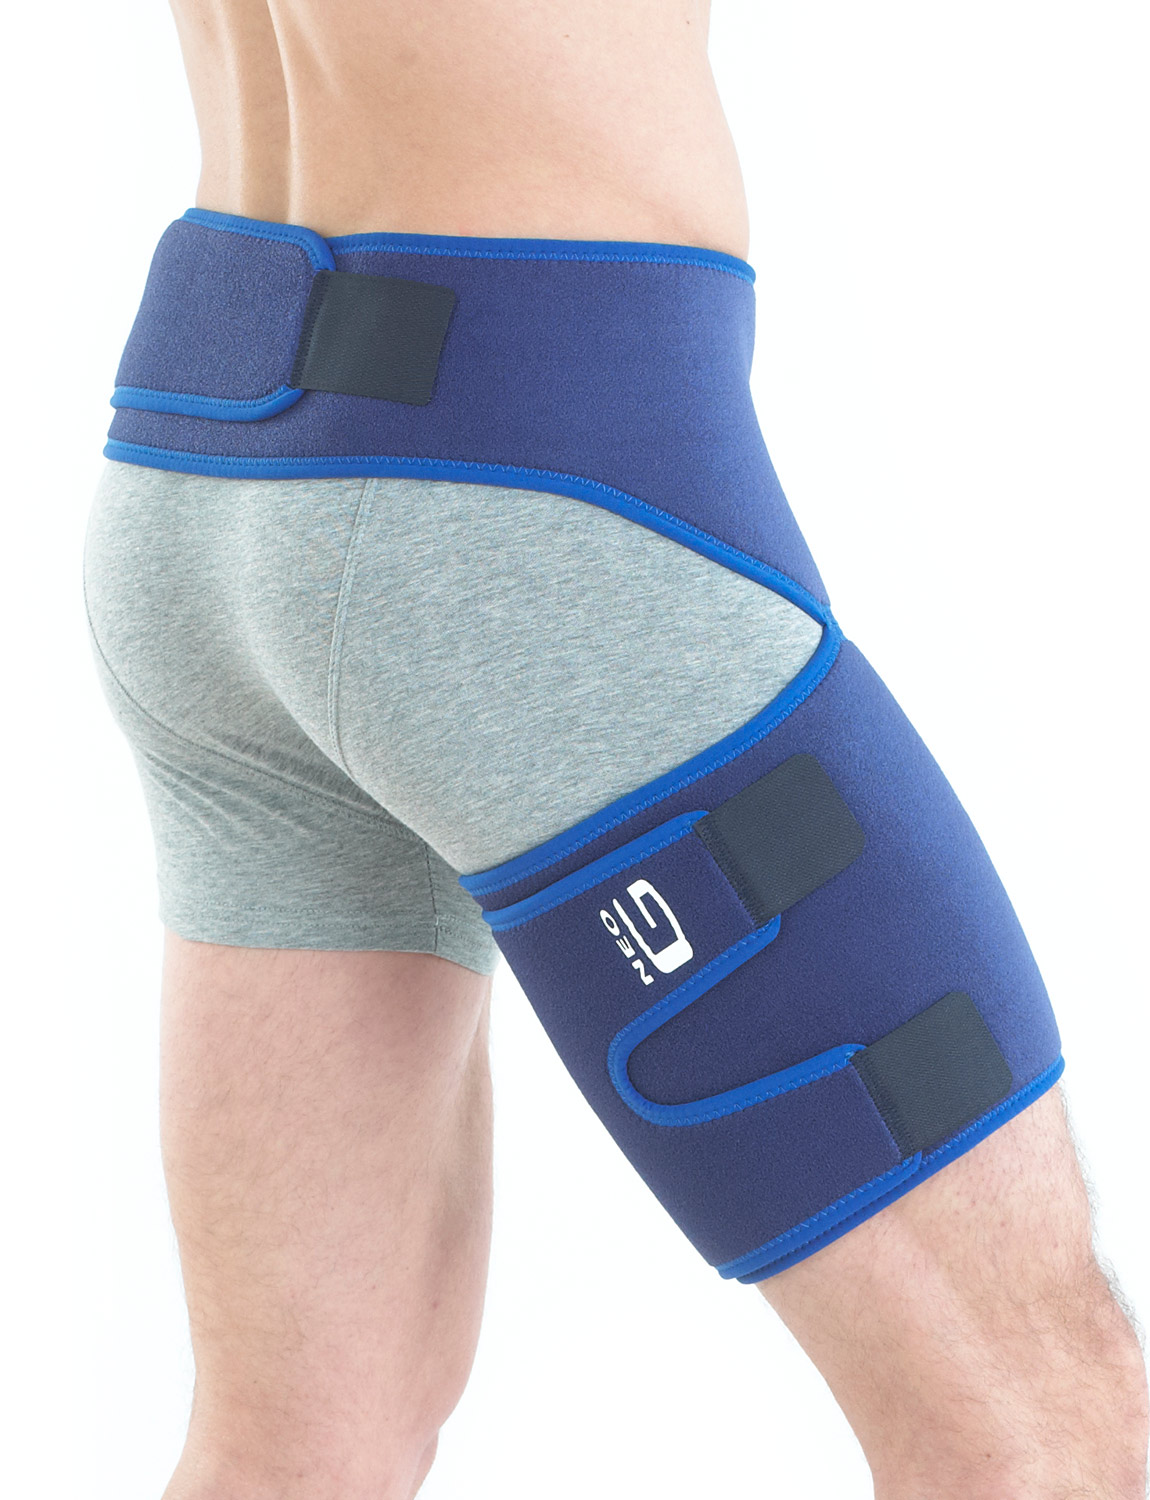 888B - GROIN SUPPORT  Designed to help reduce the contractile force of the adductor muscles at the groin, helping with pain from groin strains or repeated injury, making it well suited to those with occupational or sports related groin injuries.